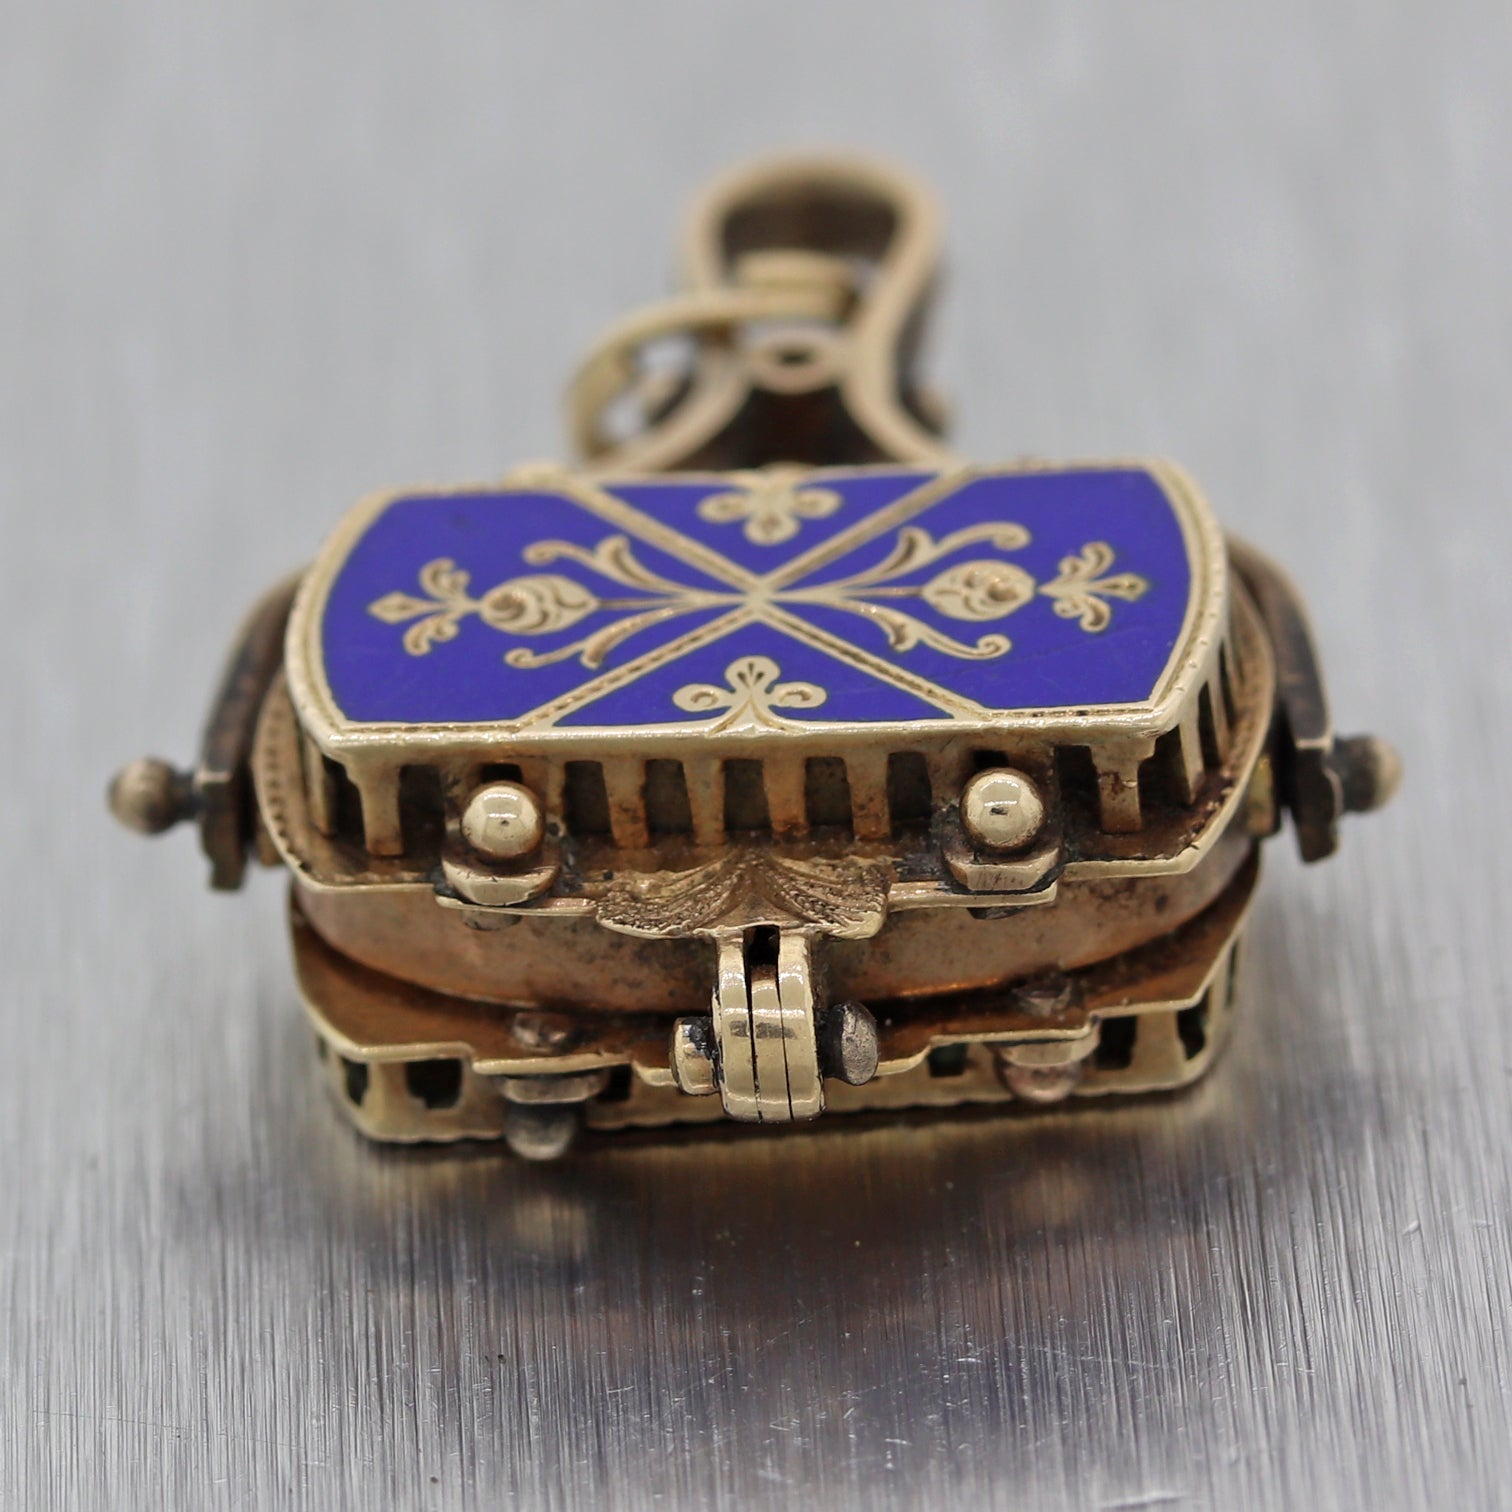 1860's Antique Victorian 14k Yellow Gold Blue Enamel Fob Locket Charm